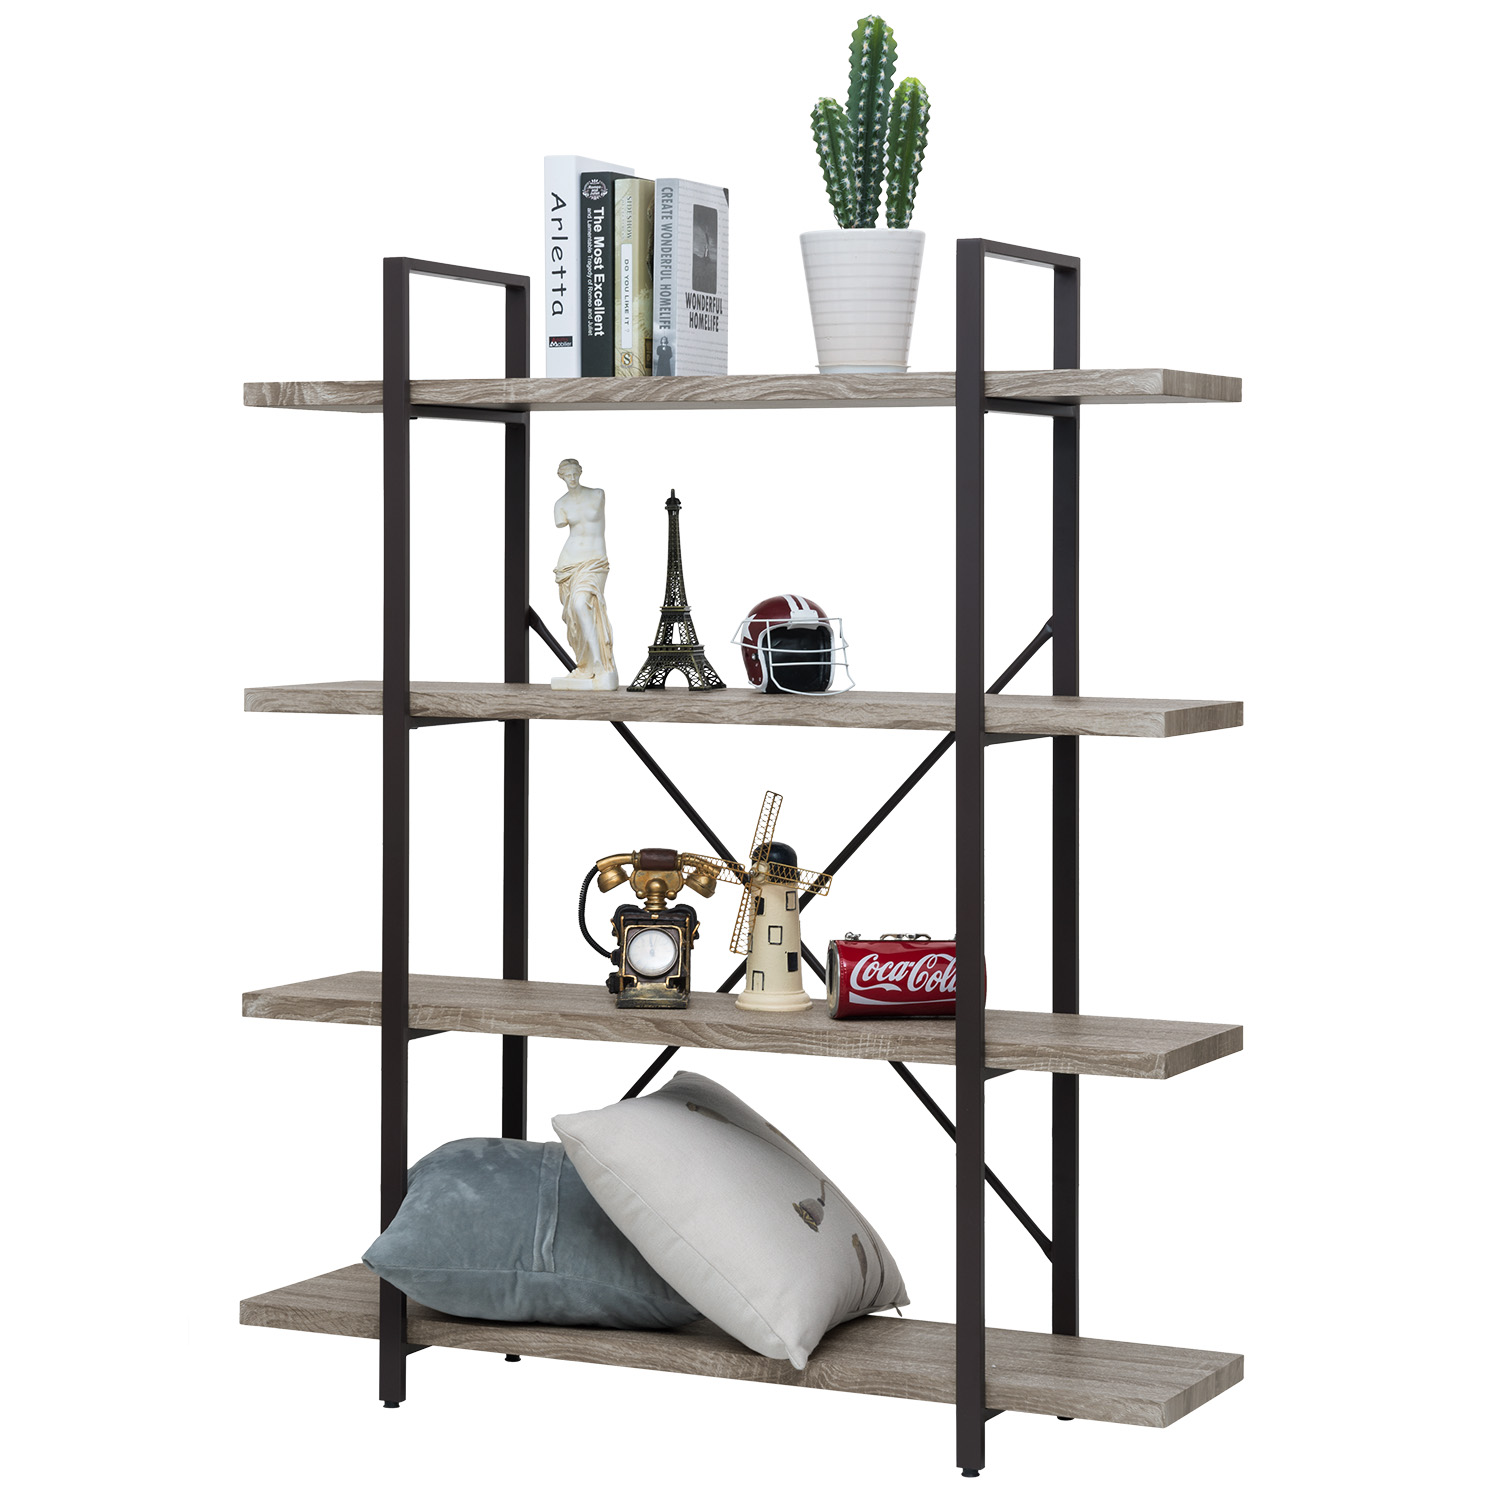 Ollieroo 4 Tier Rustic Vintage Bookcase Industrial Bookshelf, Grain Wood and Metal Shelves Furniture